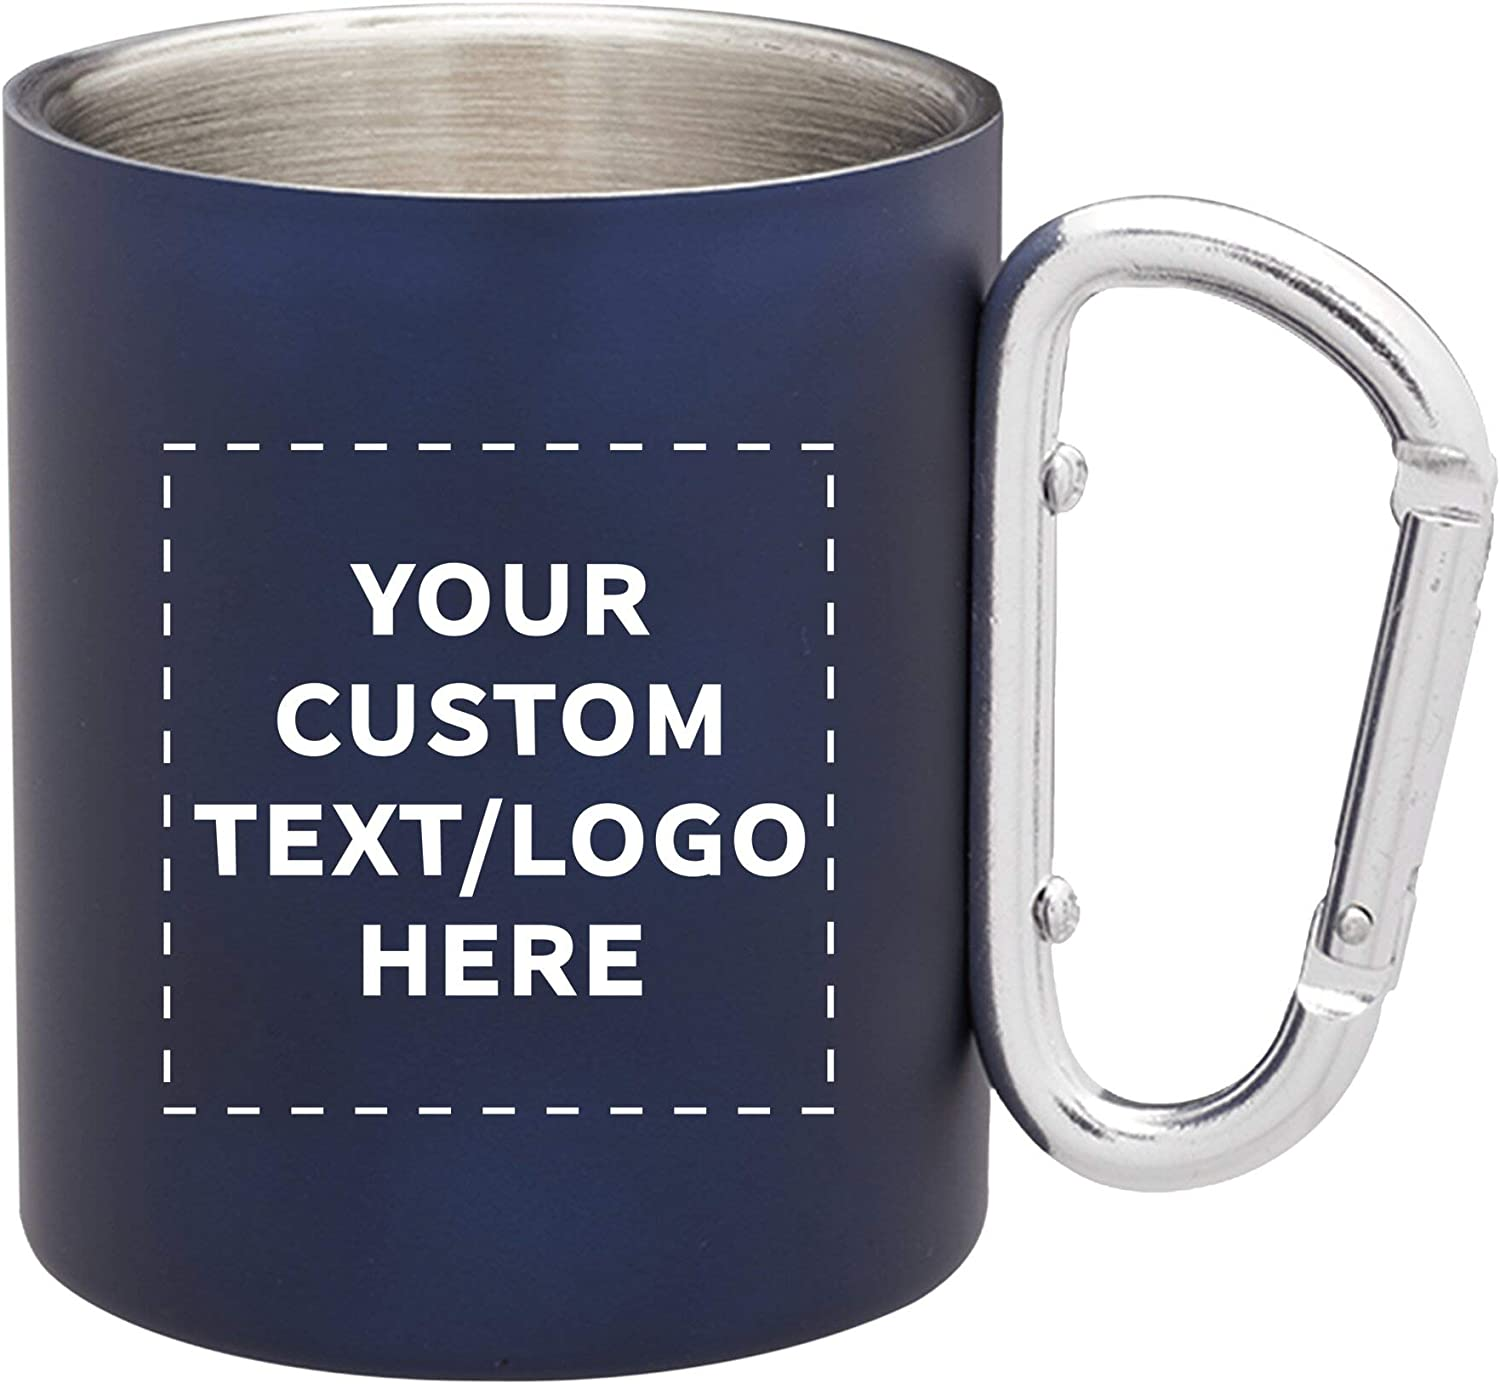 Custom Discuont Promos Carabiner Handle 10 Stainless Steel Save money Indianapolis Mall Mugs